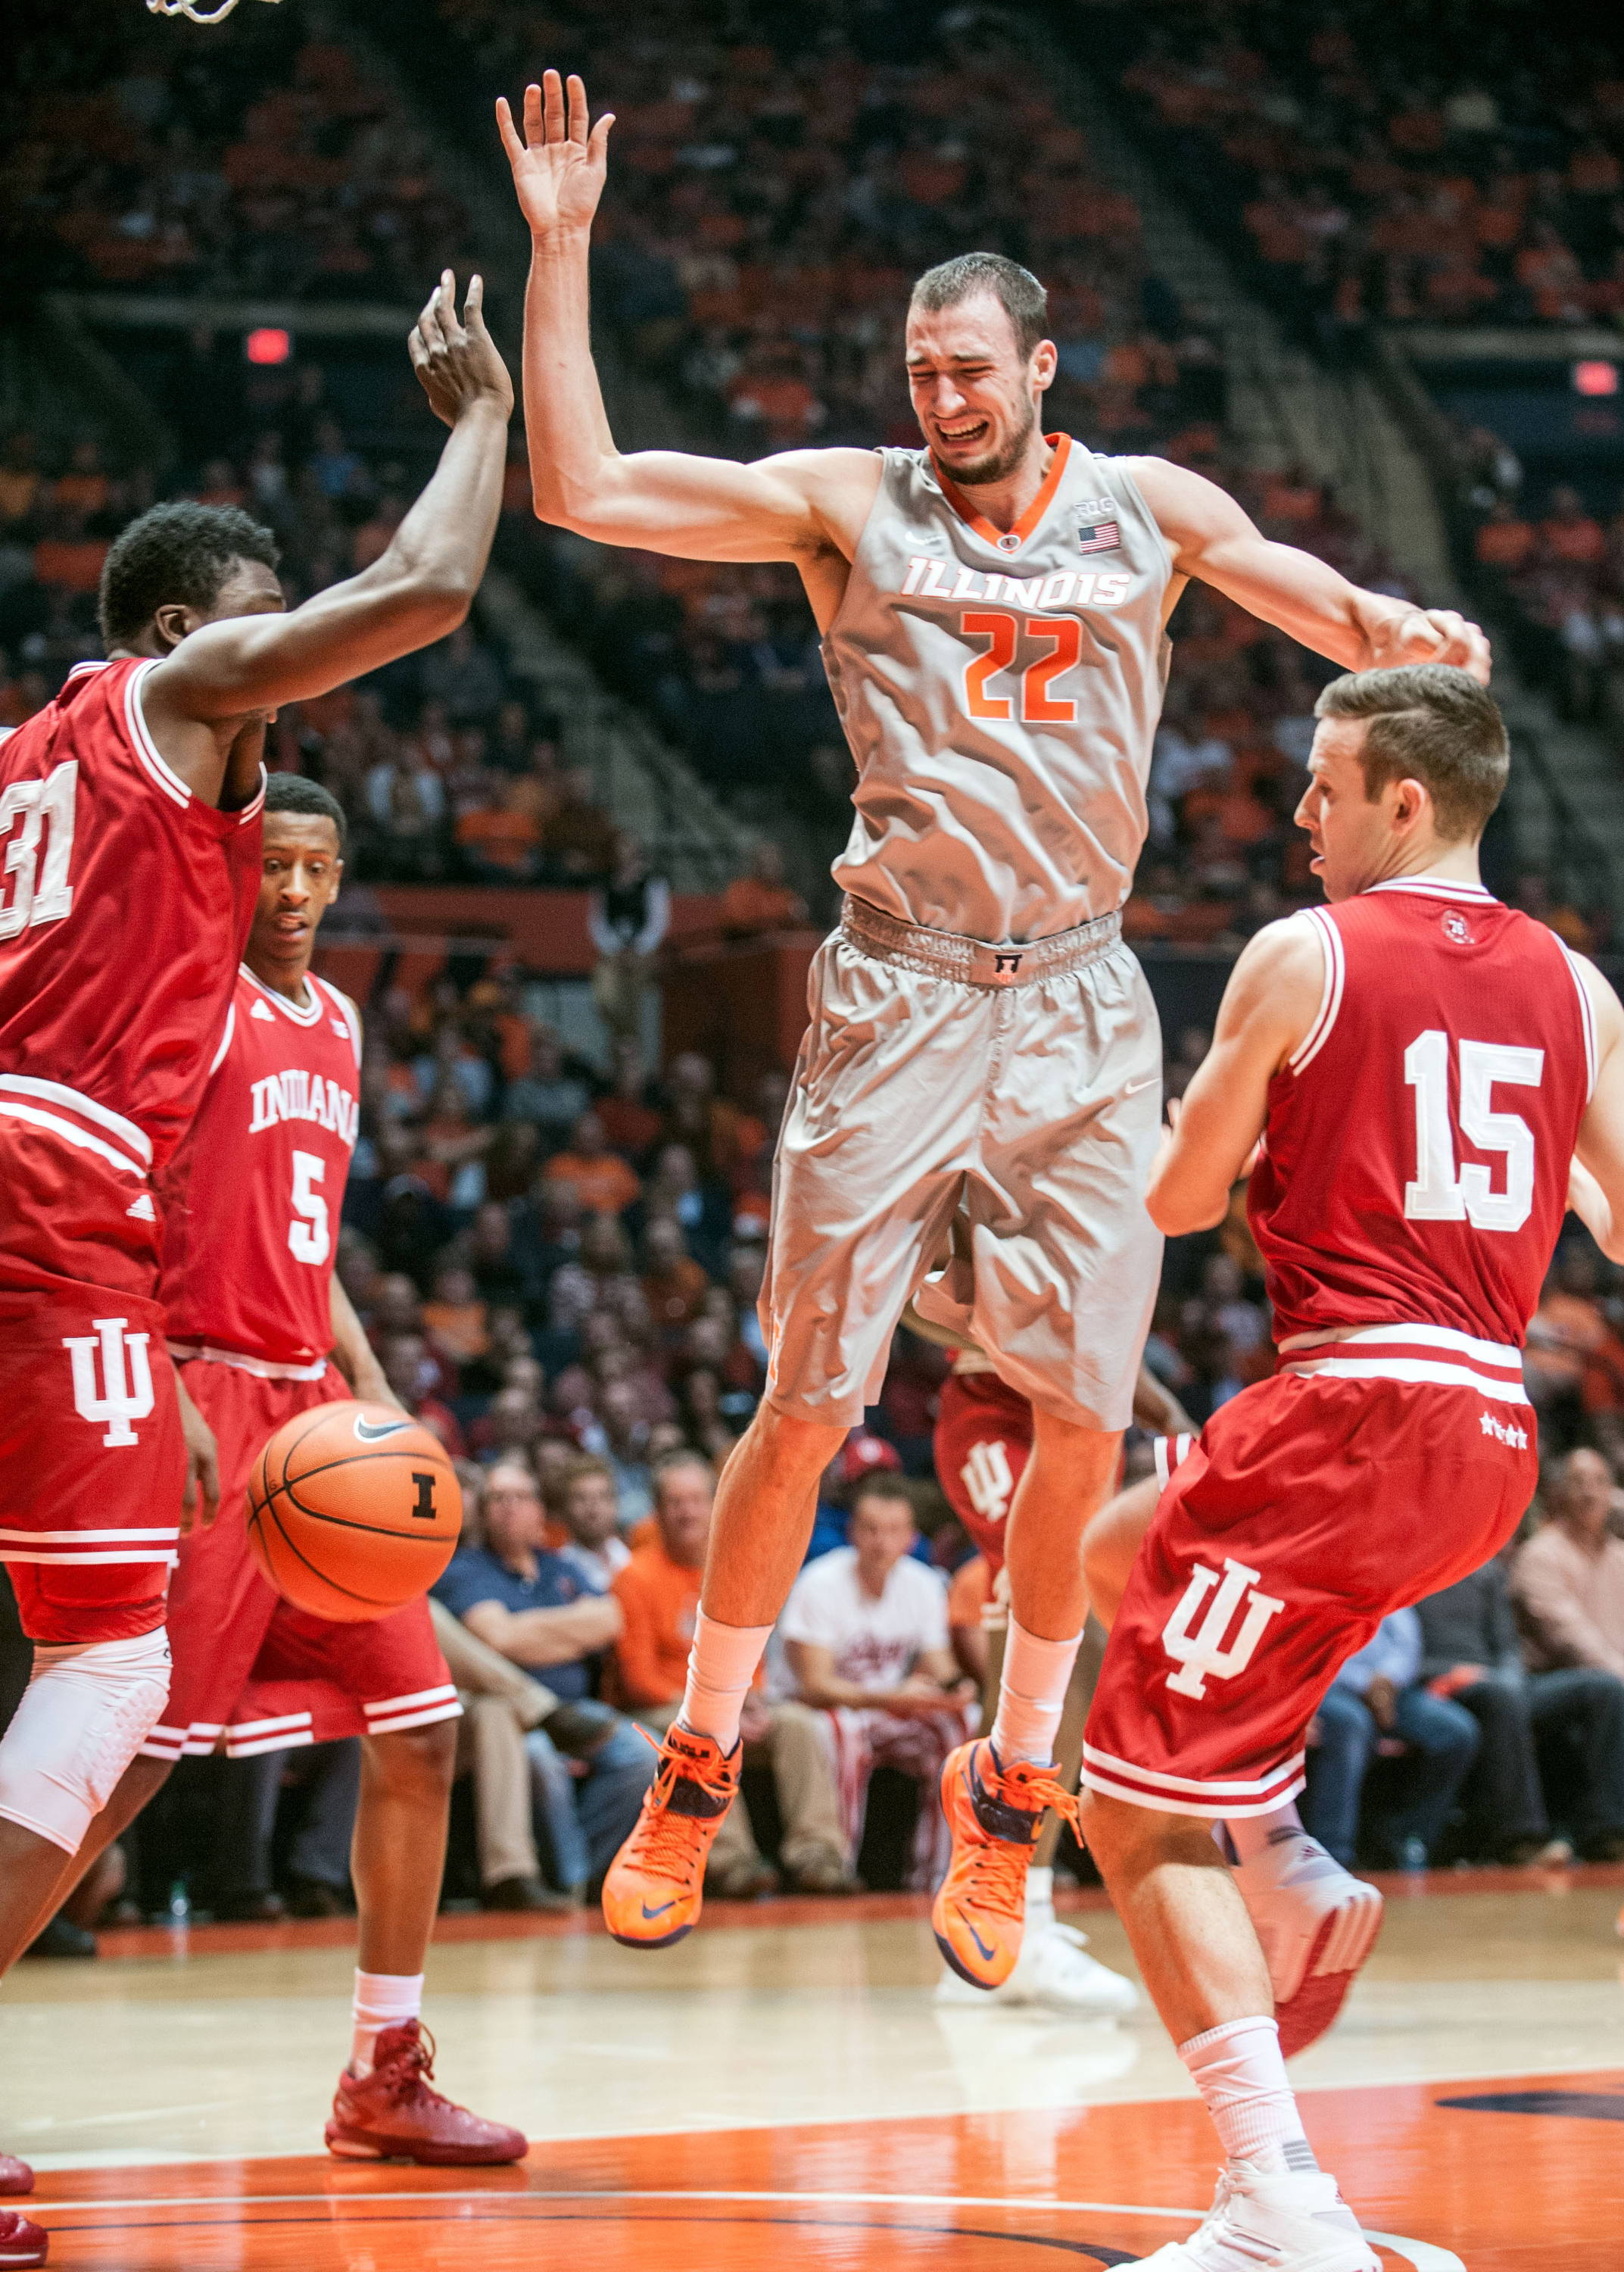 Illinois center Maverick Morgan (22) loses control of the ball after Indiana guard Harrison Niego (15) swatted it from Morgan's grip, as Indiana center Thomas Bryant (31) and Iforward Troy Williams (5) watch during an NCAA college basketball game in Champ